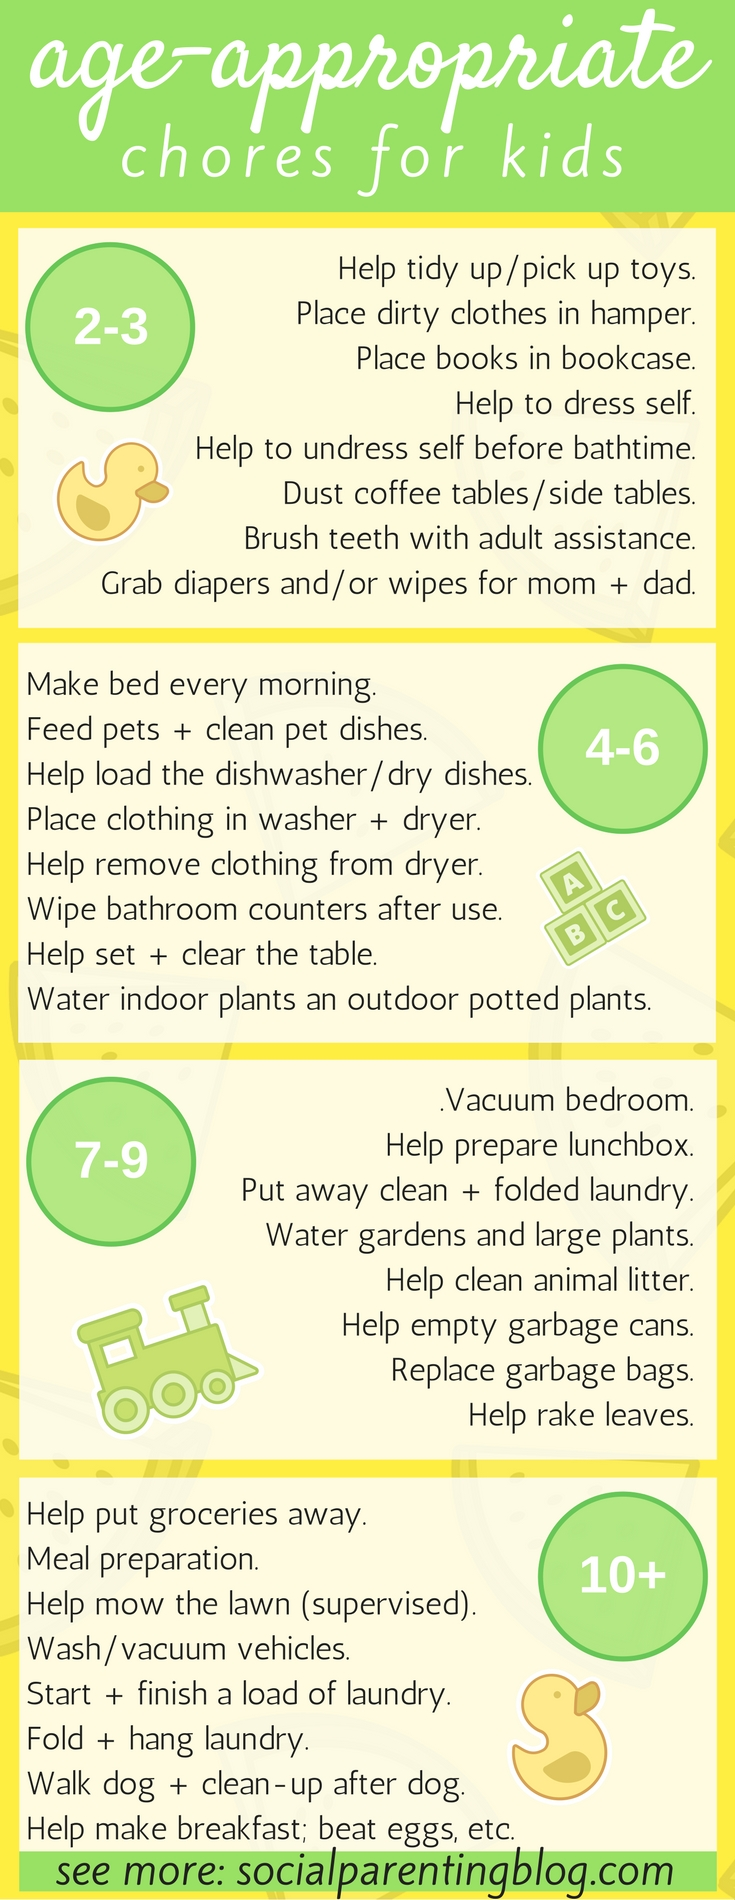 Age-appropriate chores for kids ages 2-10+